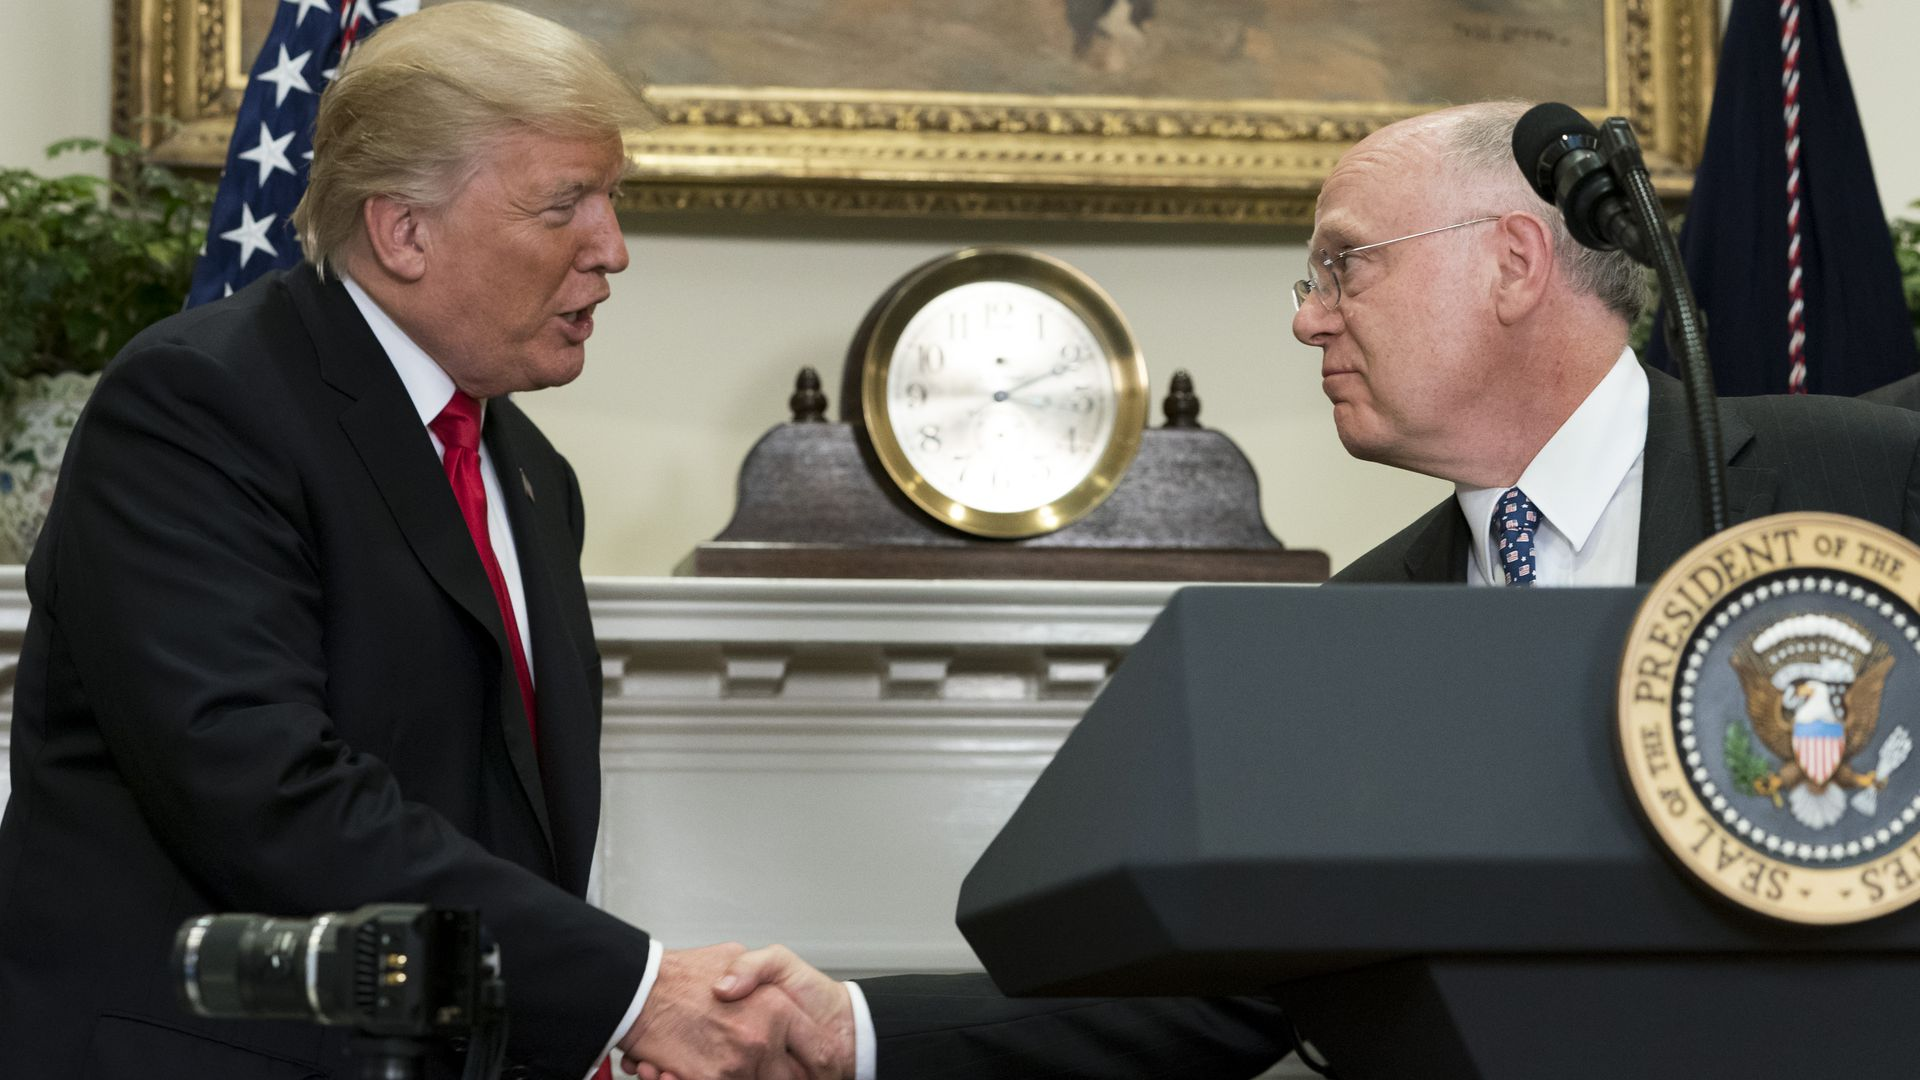 President Trump shaking hands with Ian Read, CEO of Pfizer.